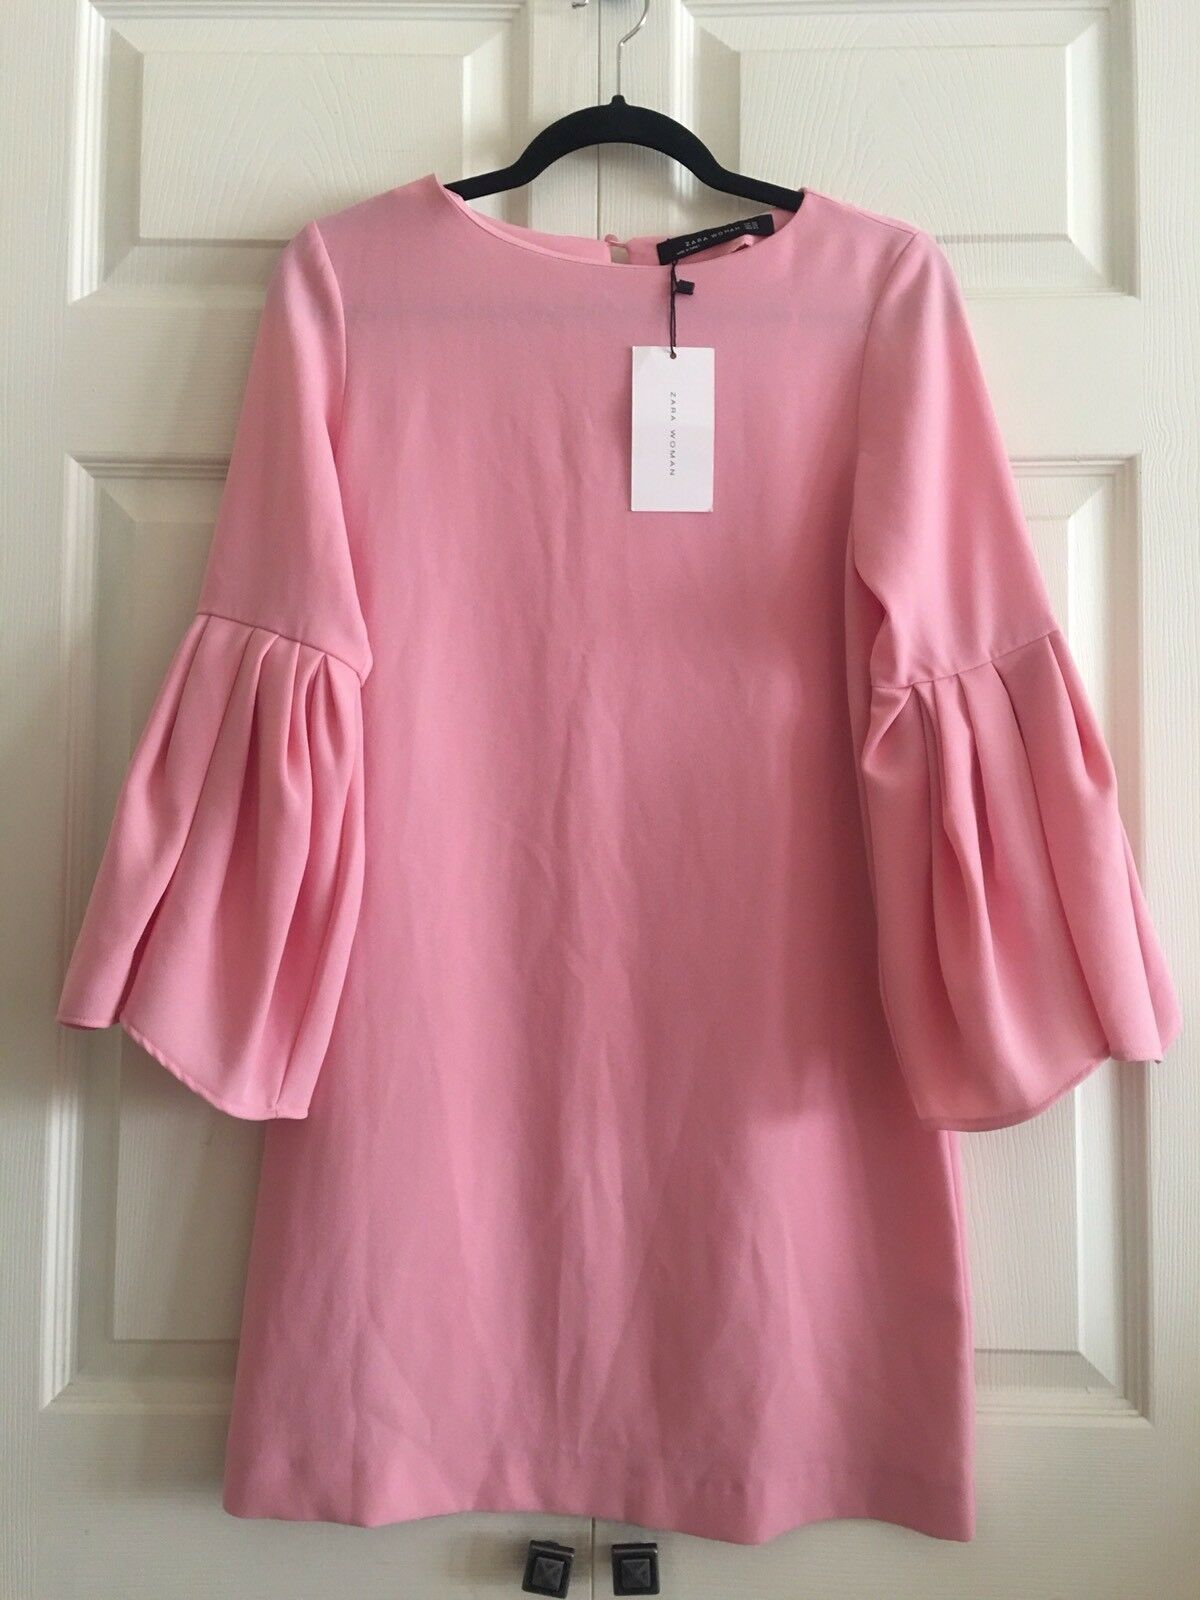 NWT ZARA Pink Bell Sleeve Dress Size XS